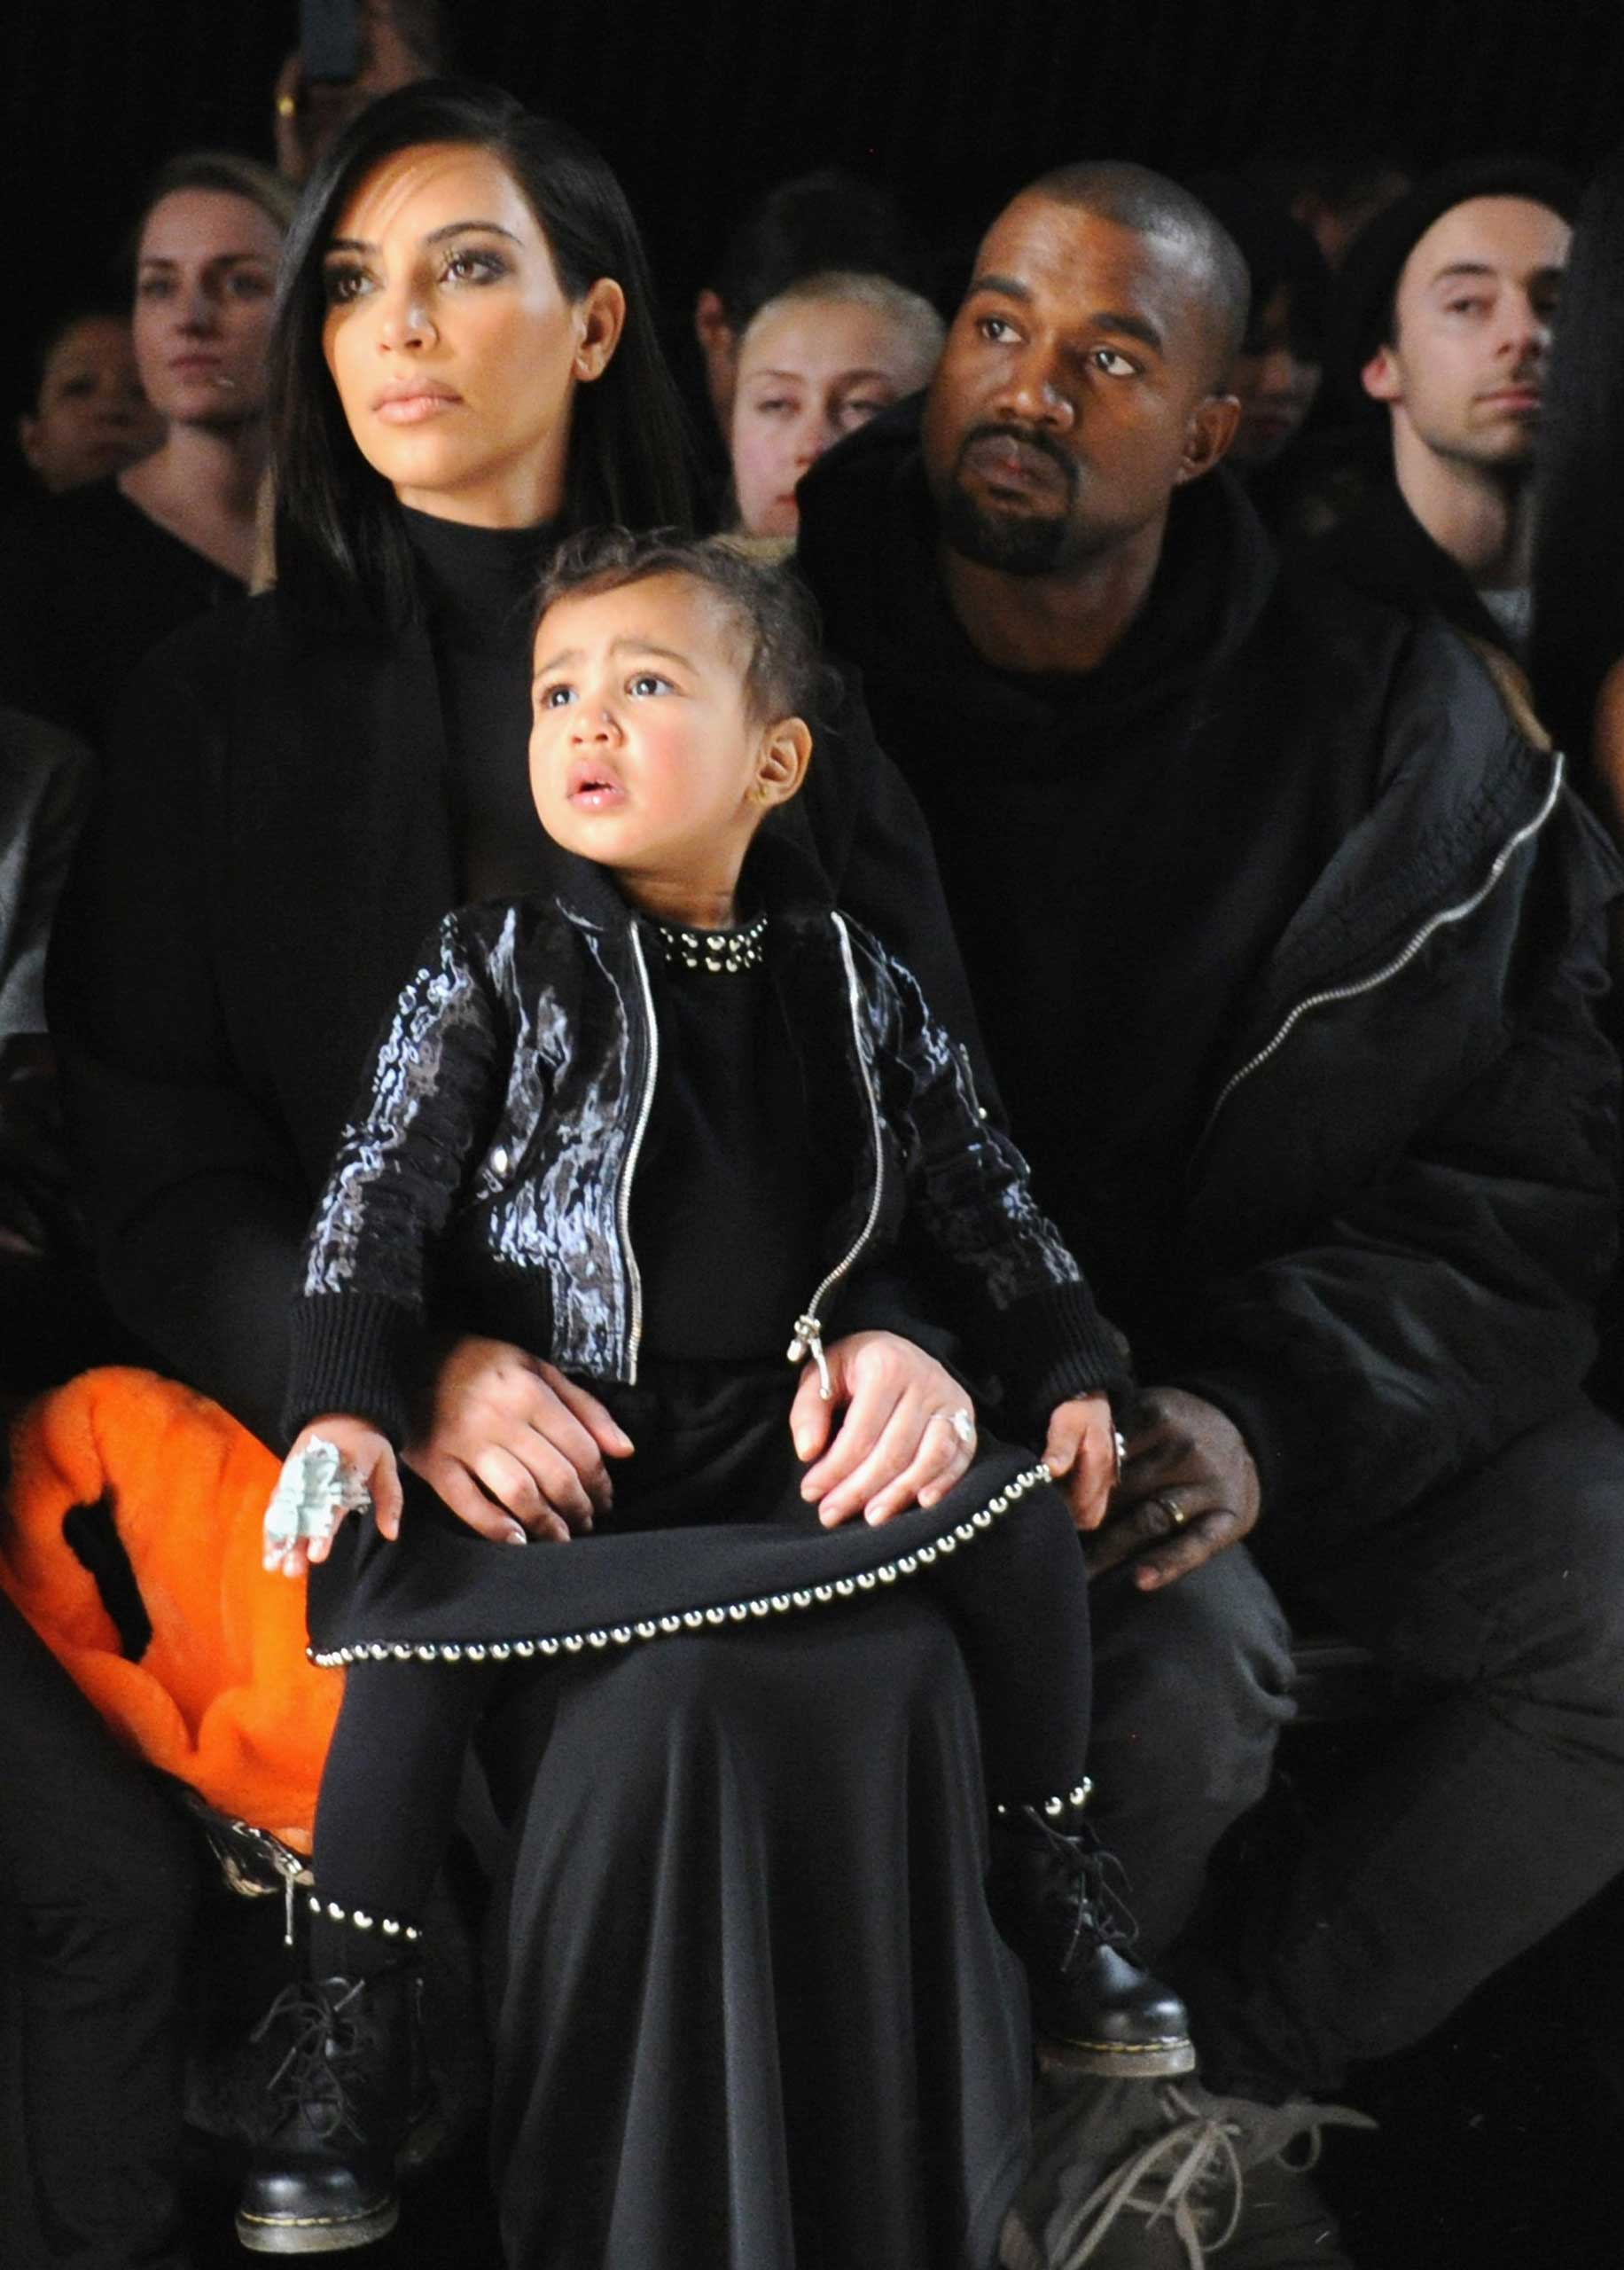 Kim Kardashian, North West and Kanye West attend the Alexander Wang Fashion Show during Mercedes-Benz Fashion Week Fall 2015 at Pier 94 on Feb. 14, 2015 in New York City.